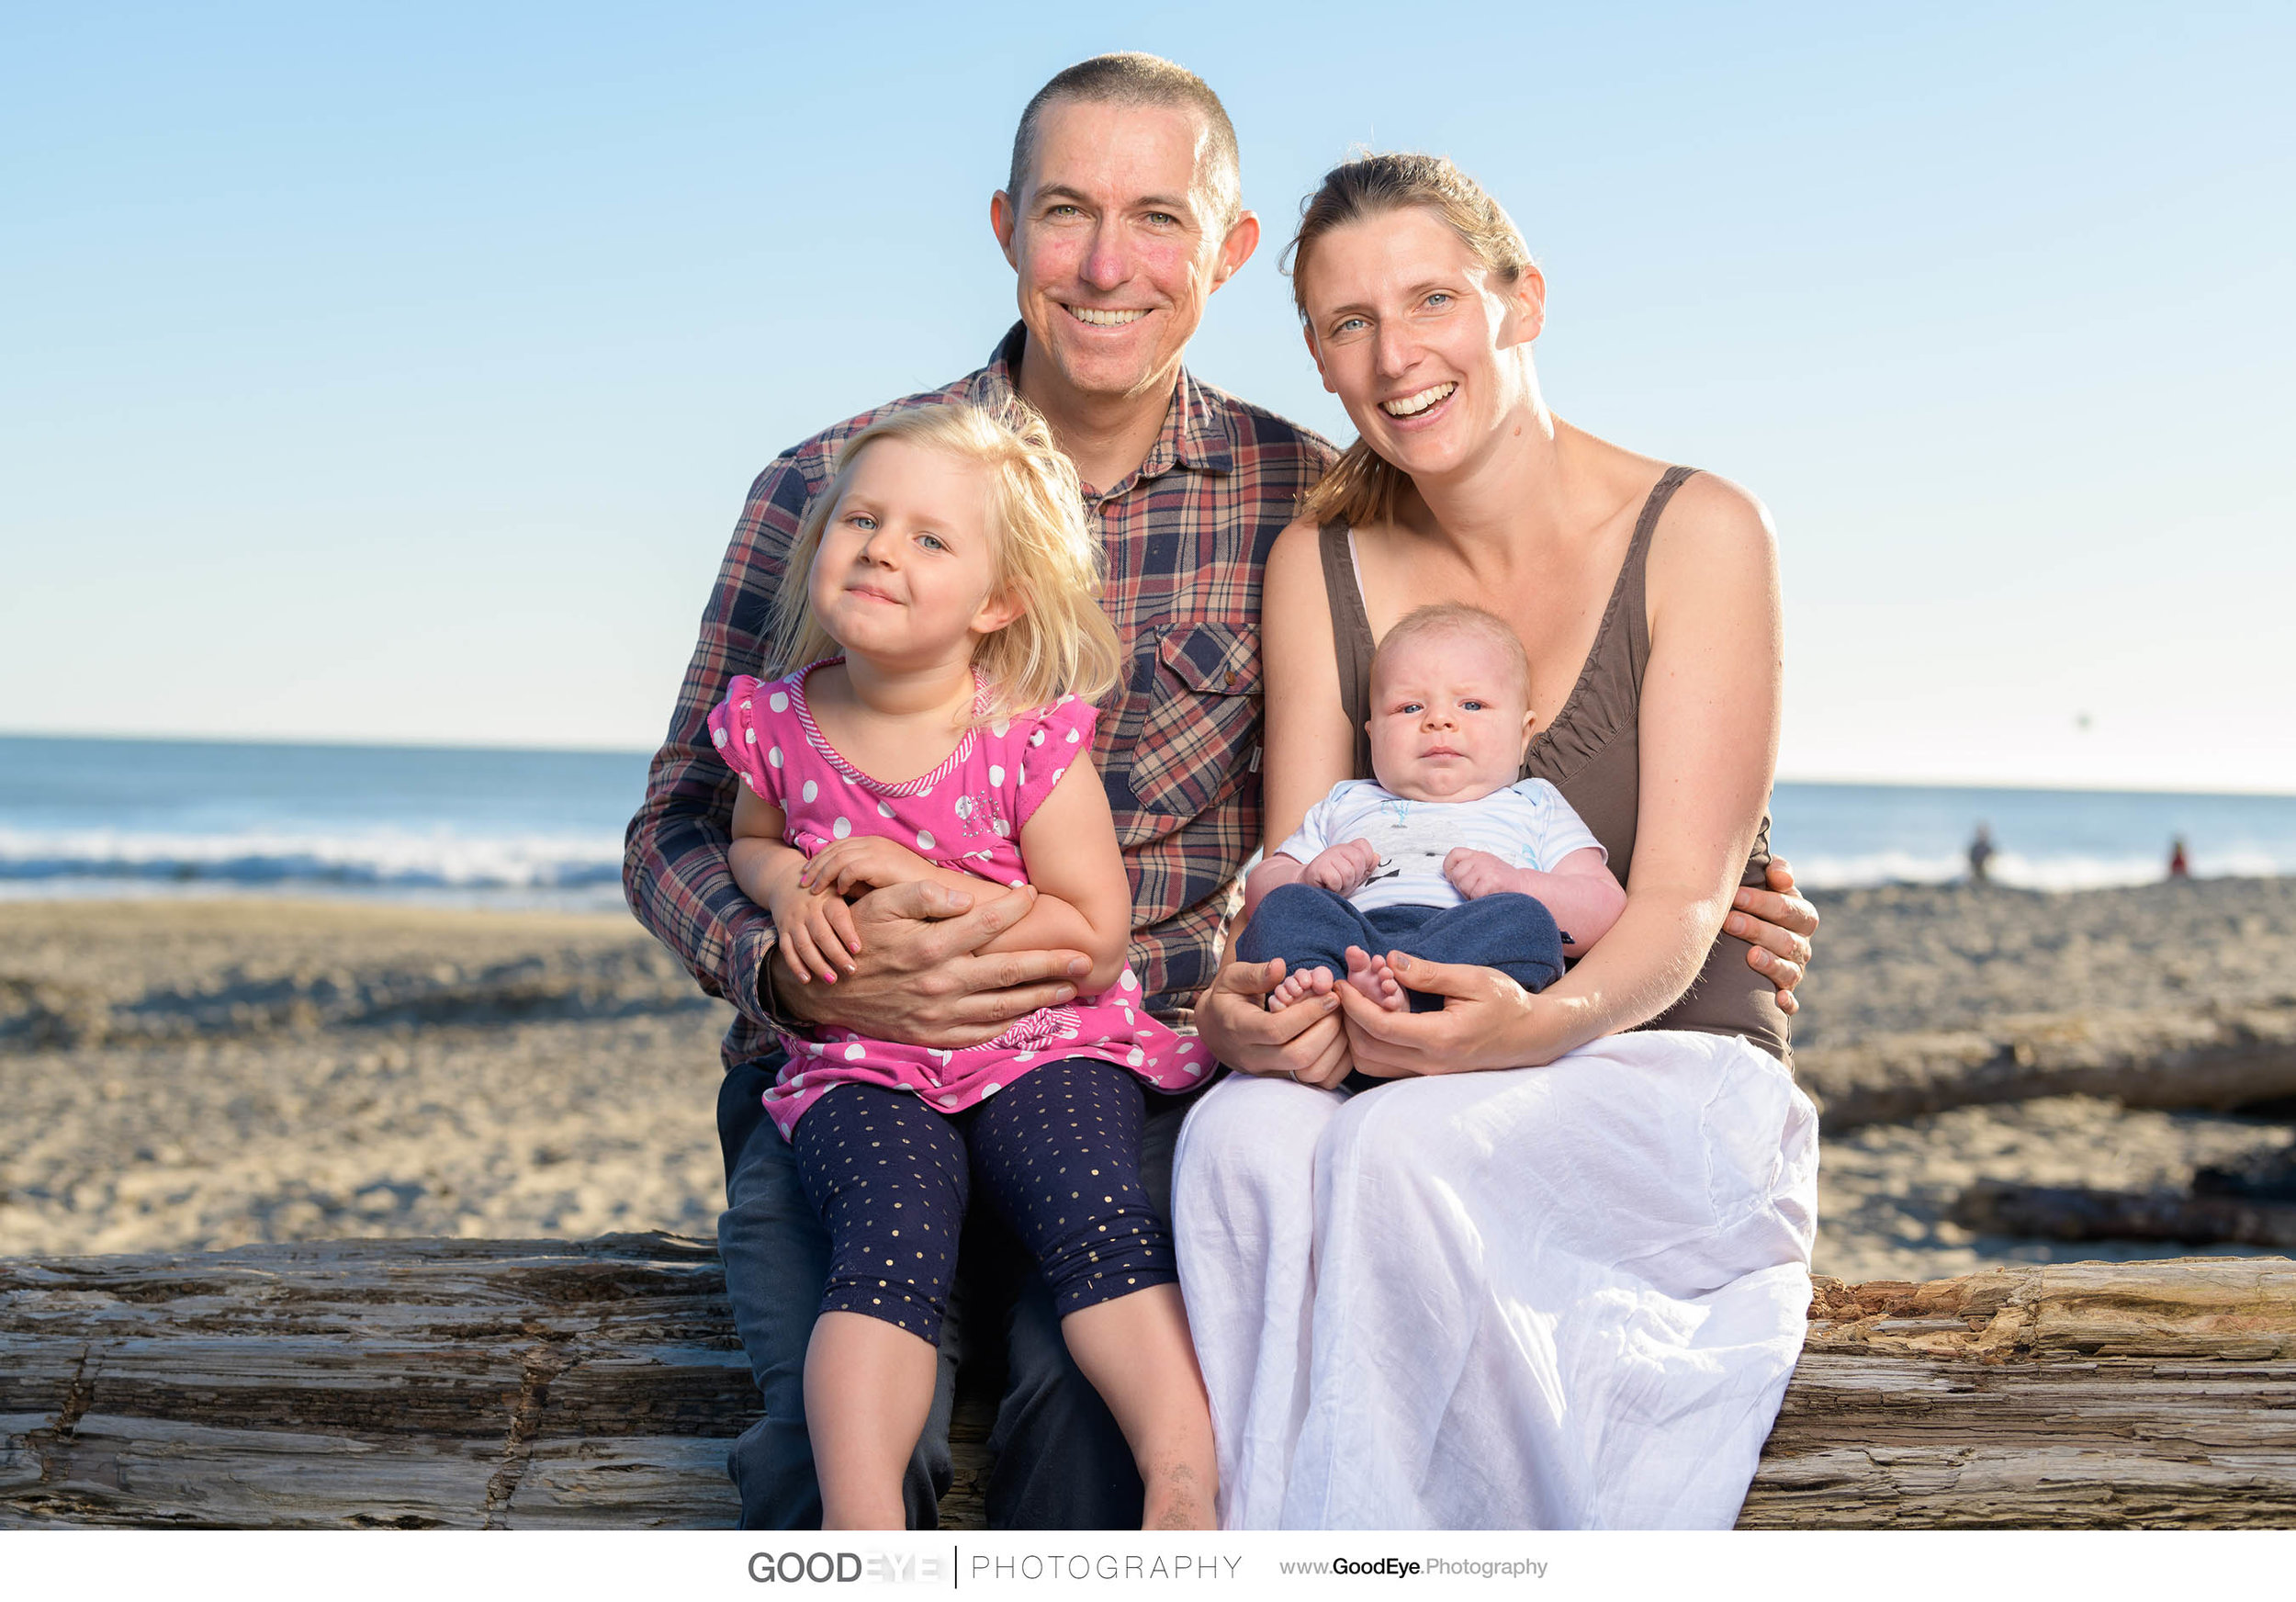 7730_Maja_and_Justin_Twin_Lakes_Beach_Santa_Cruz_Newborn_Family_Photogrraphy.jpg